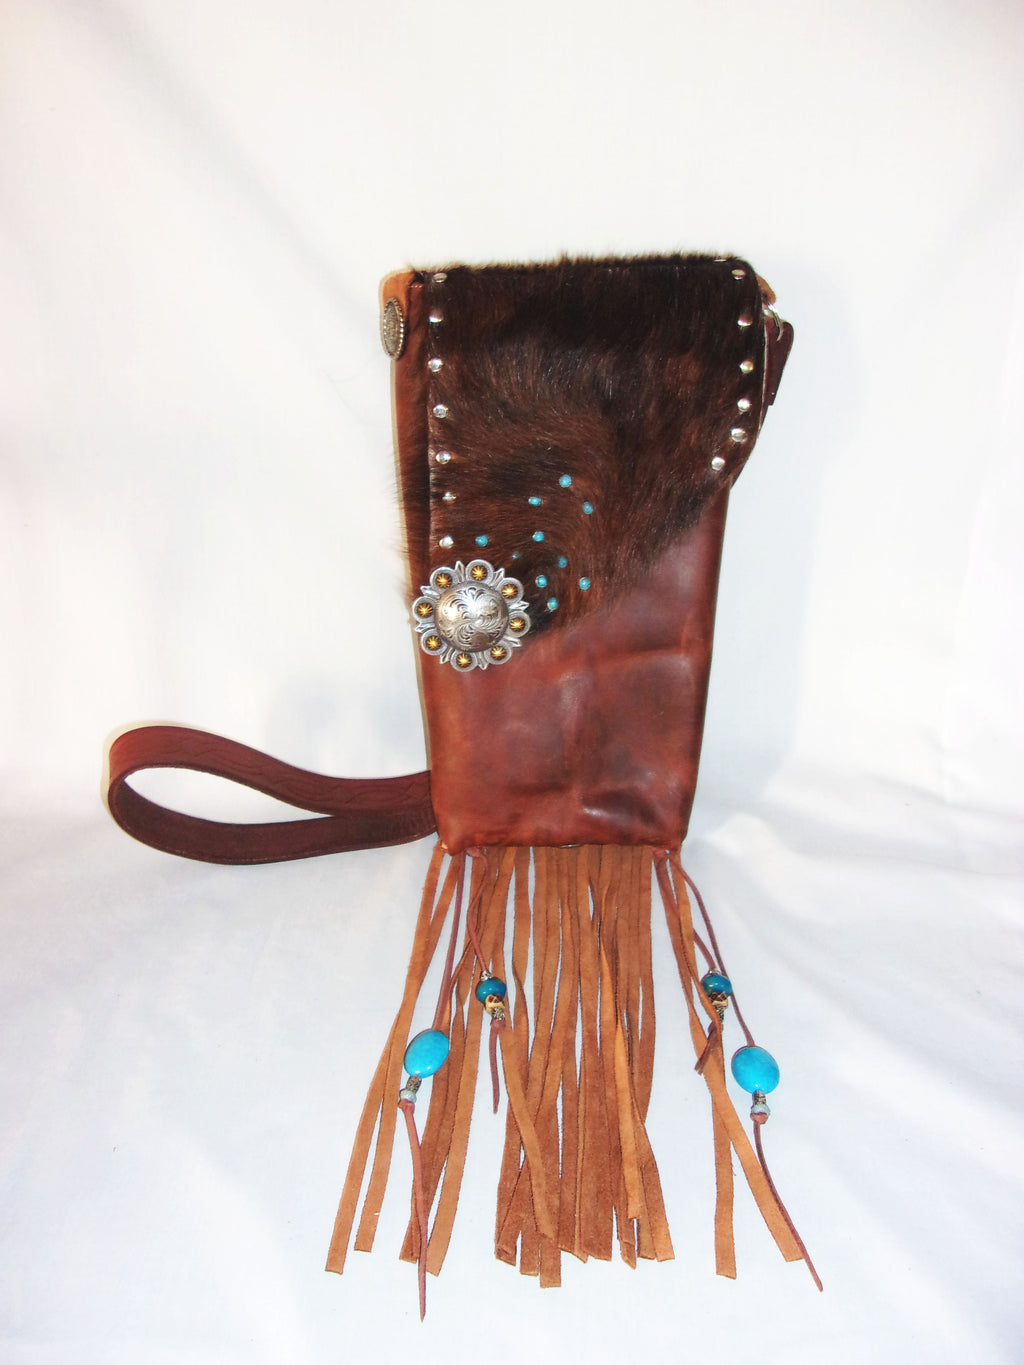 Hair on Hide Bag - Cowboy Boot Purse - Cowhide Purse - Handcrafted Crossbody Purse HH35